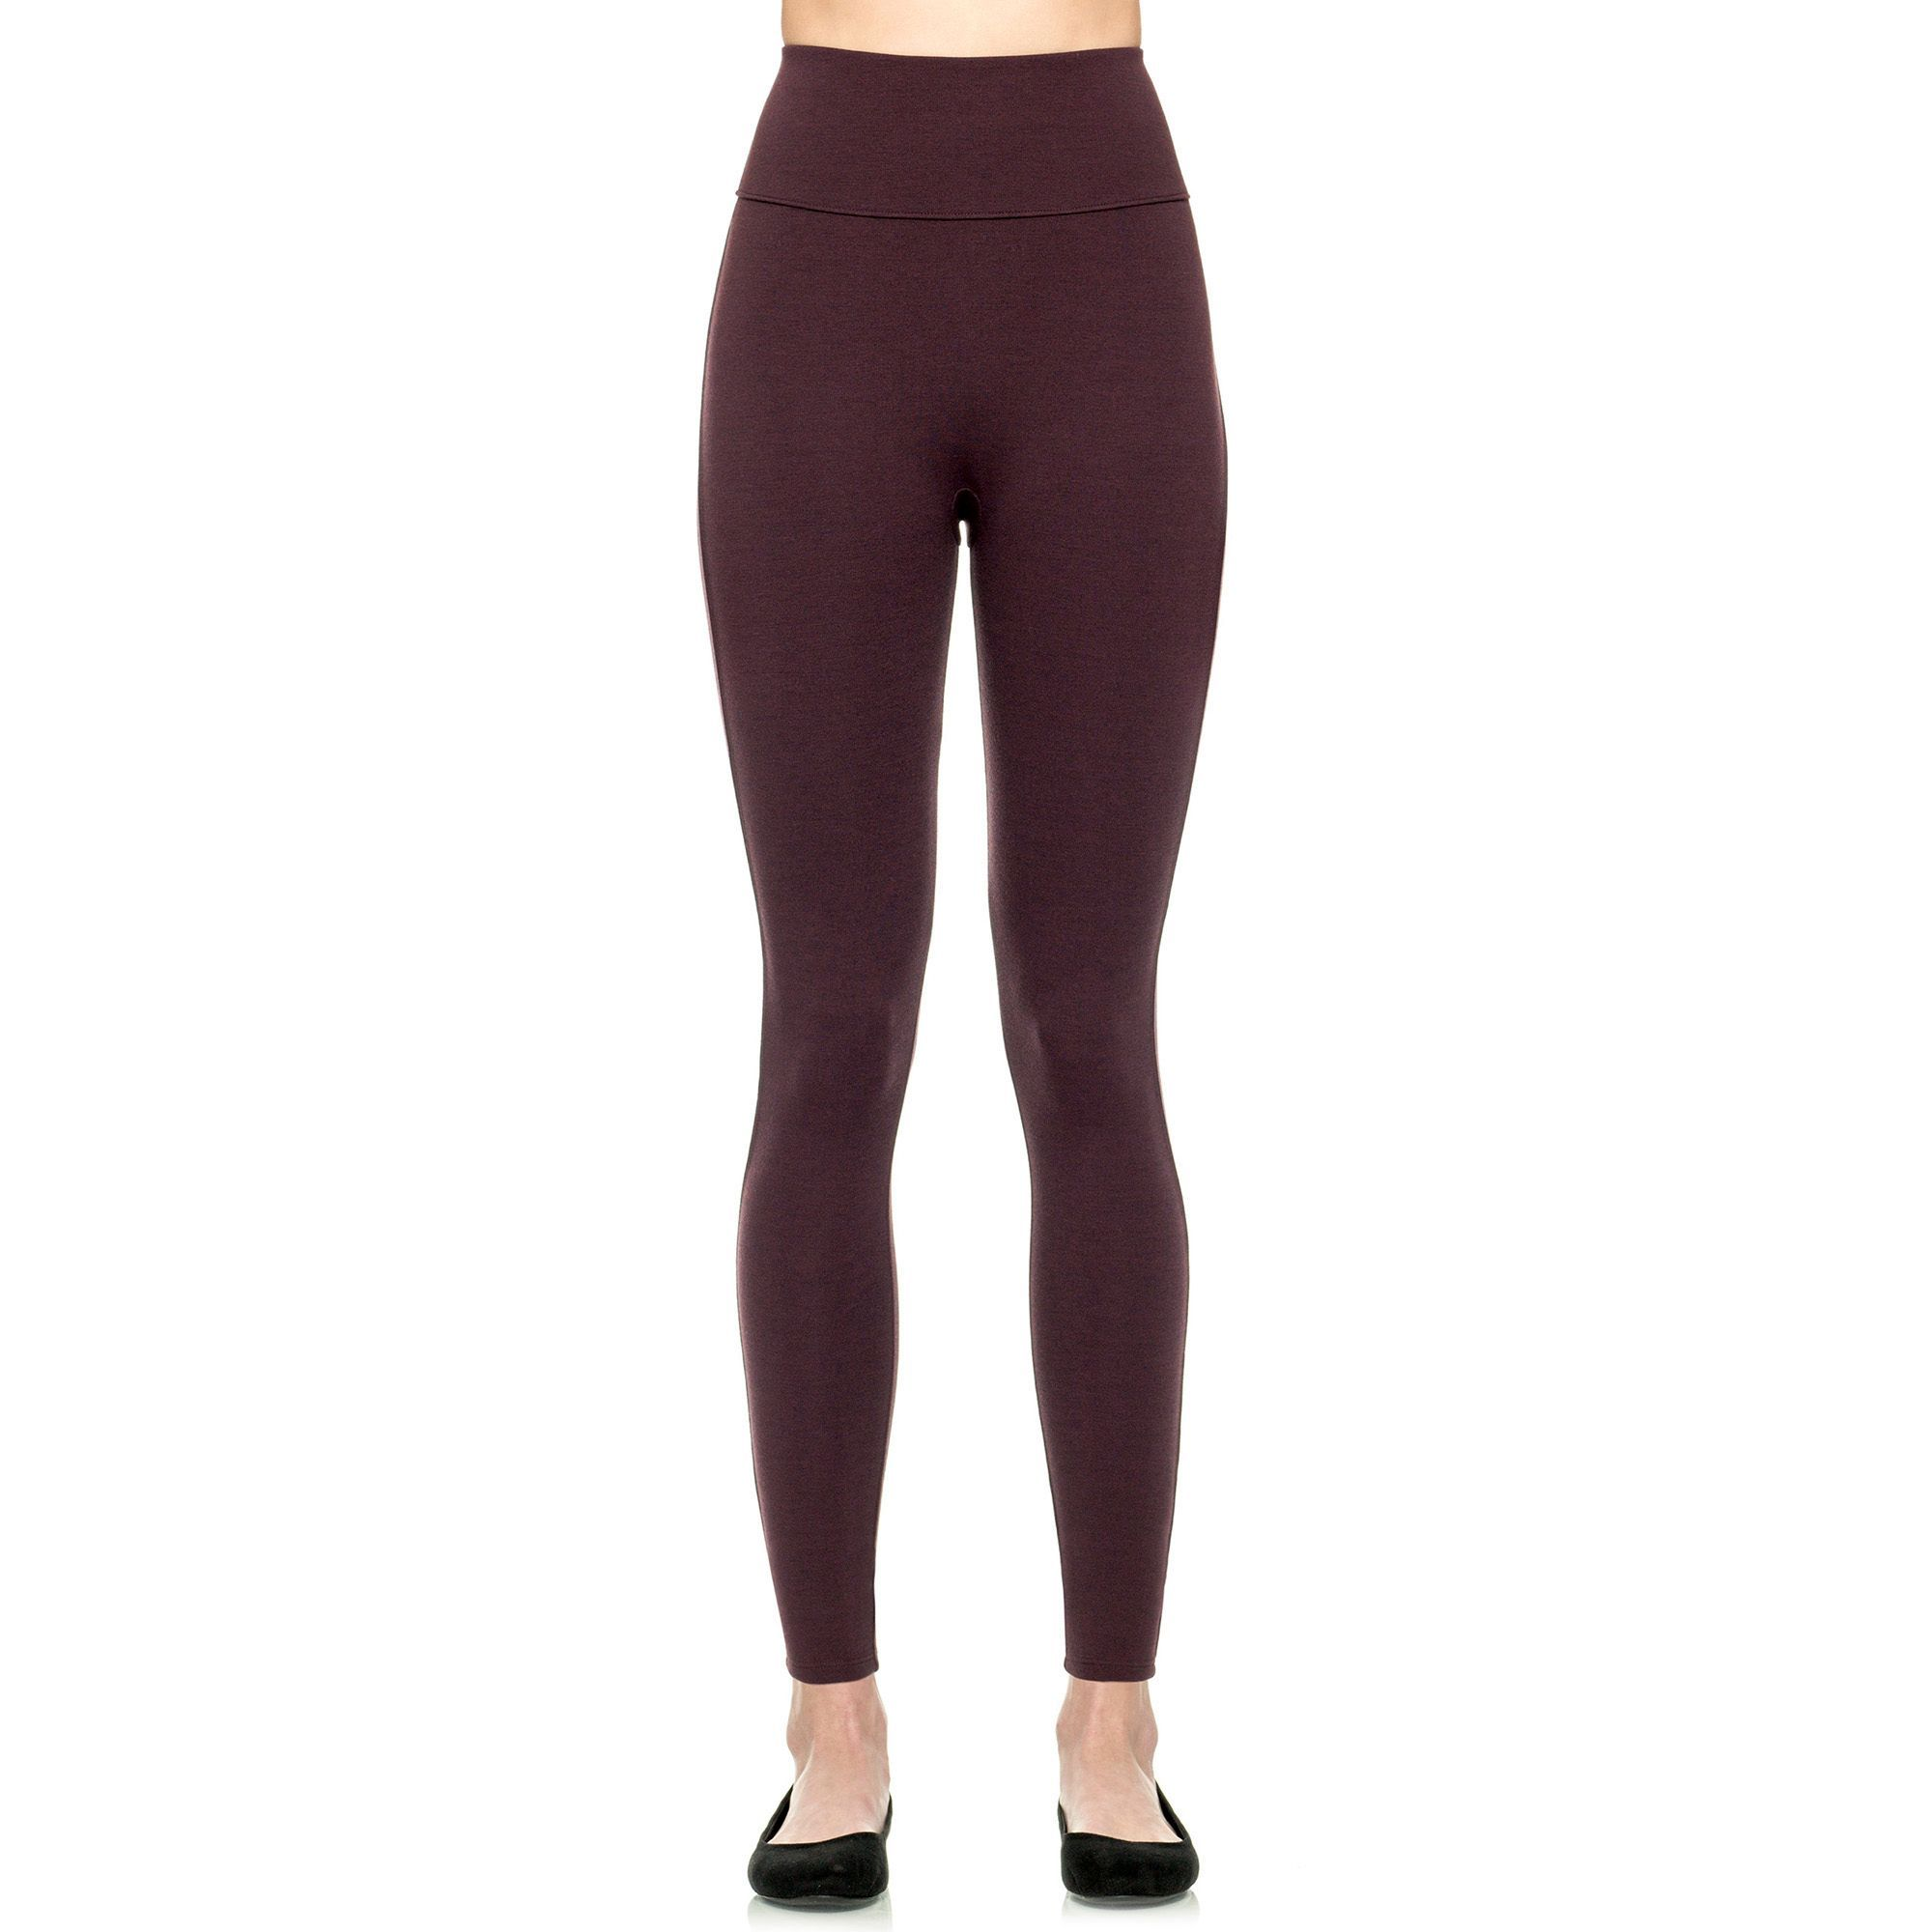 4fc09d62d4546 ASSETS® Red Hot Label™ by Spanx Structured Shaping Leggings - Ponte ...